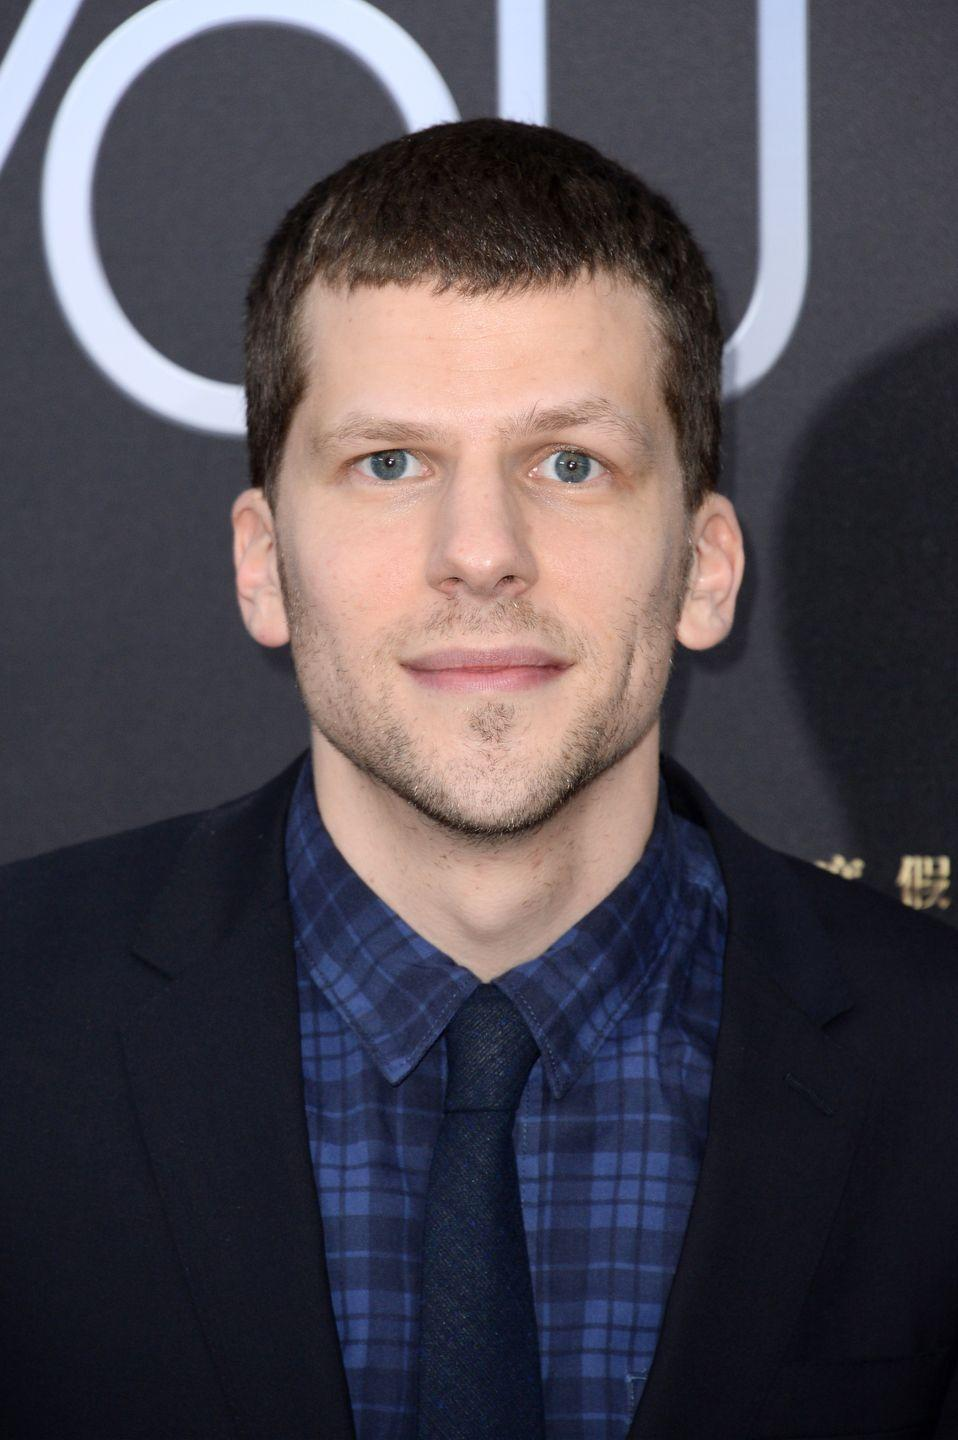 """<p>During his interview with Romina Puga about the movie <em>Now You See Me</em>, she asks Eisenberg debunk a few magic myths, starting with the infamous pulling you finger apart trick. <a href=""""https://www.youtube.com/watch?v=6AU2TaP4UGQ"""" rel=""""nofollow noopener"""" target=""""_blank"""" data-ylk=""""slk:Eisenberg notices things written on Puga's hand"""" class=""""link rapid-noclick-resp"""">Eisenberg notices things written on Puga's hand</a> and calls her out for not having questions memorized. """"Do you know the comedian Carrot Top?"""" he asks. She responds,""""Yes, horrible."""" </p><p>Then Eisenberg compares her to the comedian, and she says she's going to go home and cry after the interview. Sure, she should have been more prepared, but Eisenberg's comments weren't necessary and looked bad on his part.</p>"""